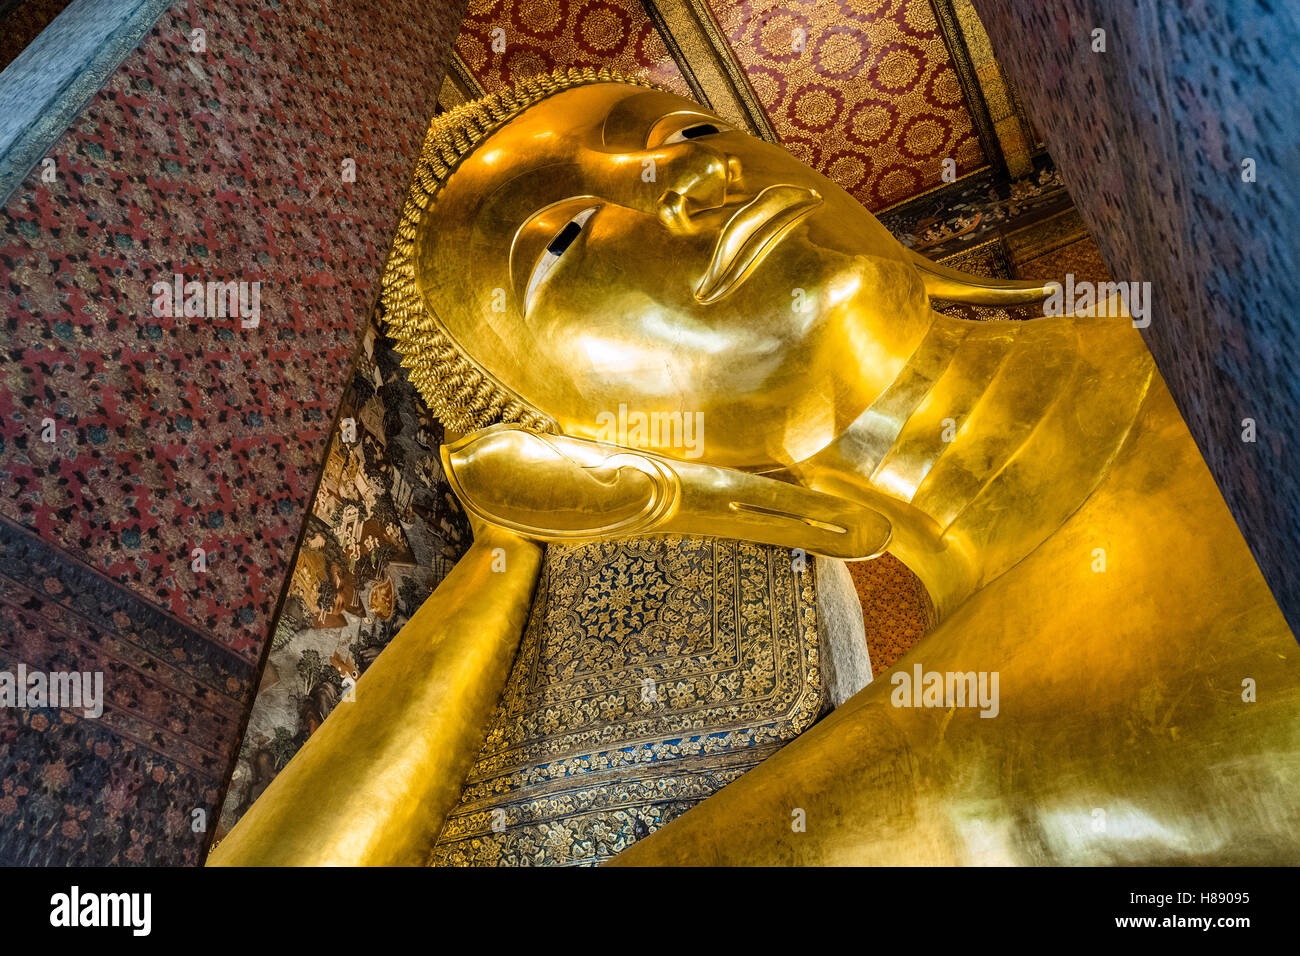 Giant reclining Buddha at Wat Pho in Bangkok. This is one of the most famous Buddha images in Thailand - Stock Image